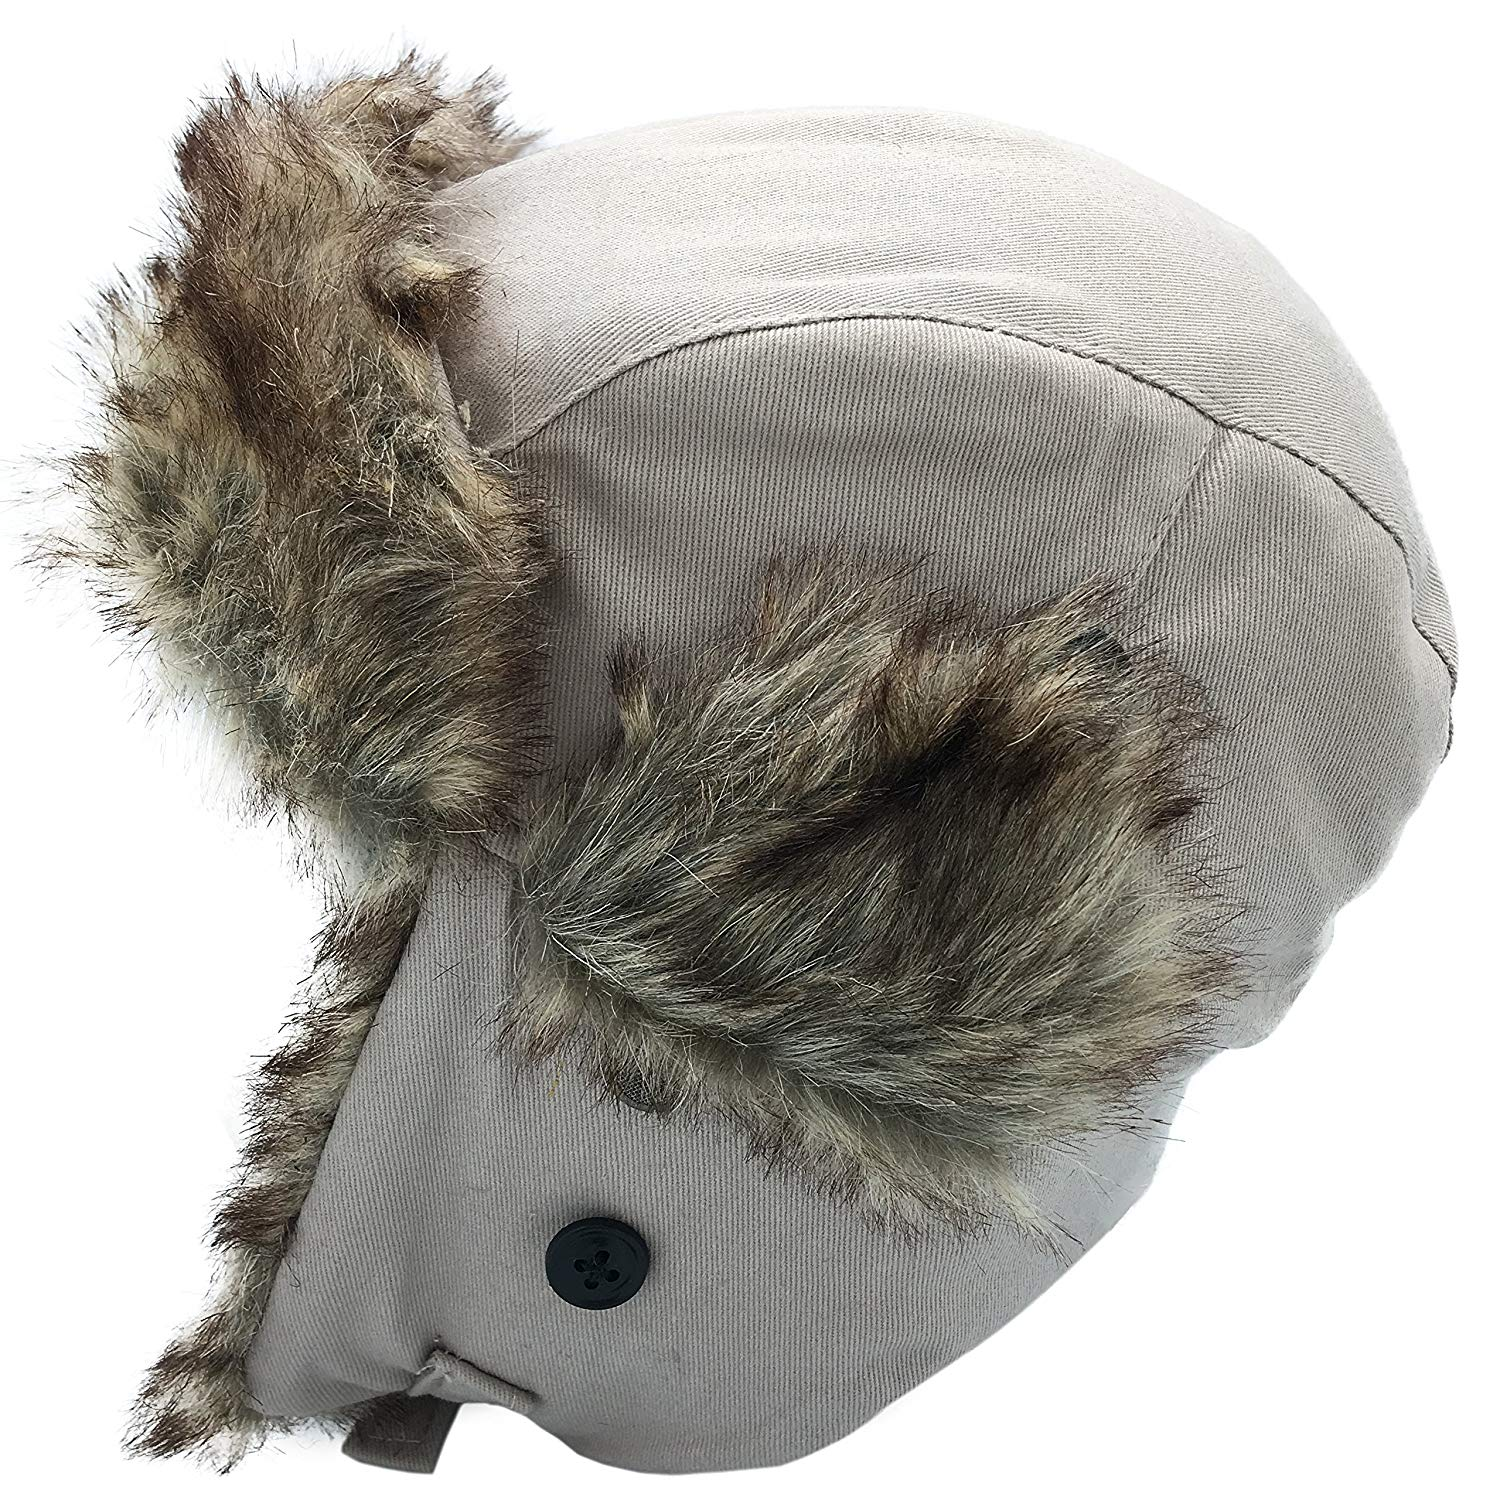 e1a5410edcf Get Quotations · Dboa Winter Faux Fur Fishing Trapper Hat